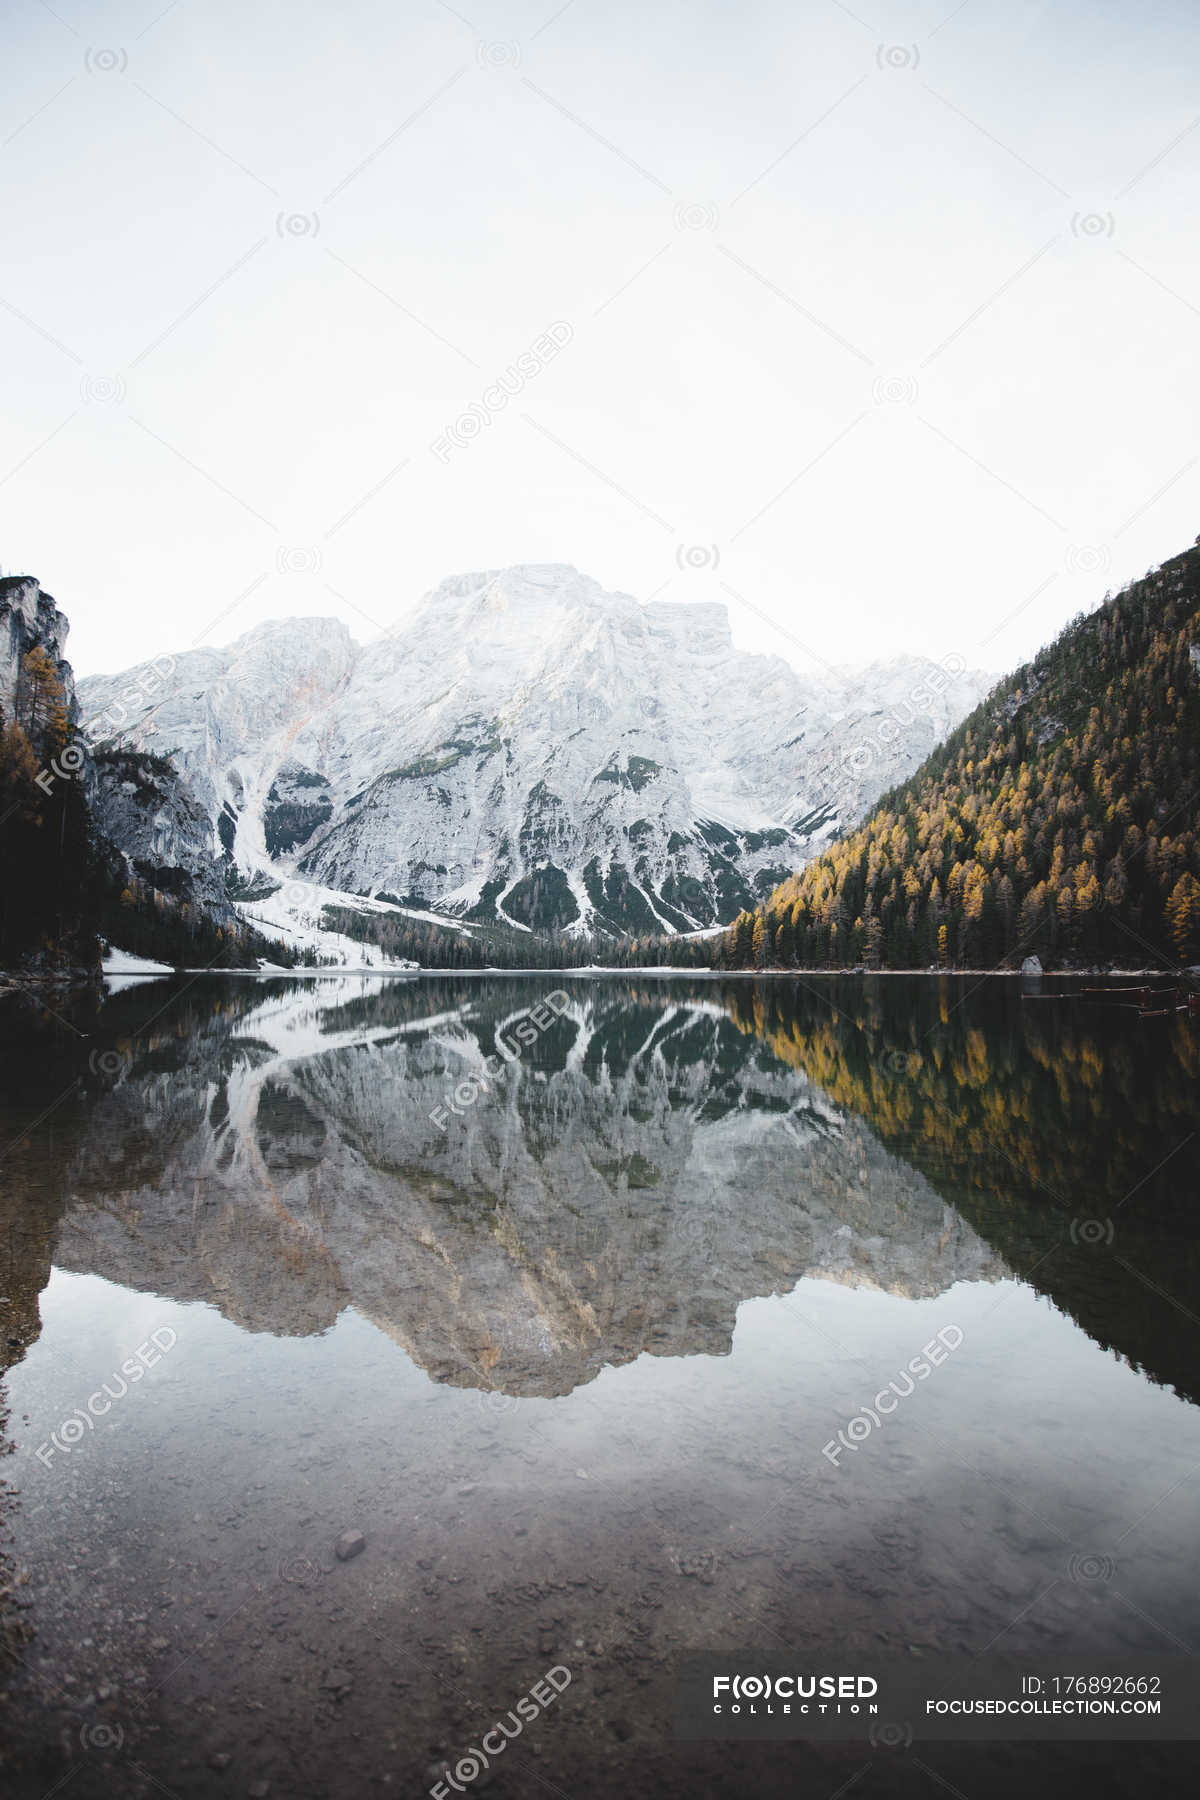 We may earn commission on some of the items you choose to buy. Picturesque Of Calm Mountain Lake And Snowy Mountain On Background Peaceful Transparent Stock Photo 176892662